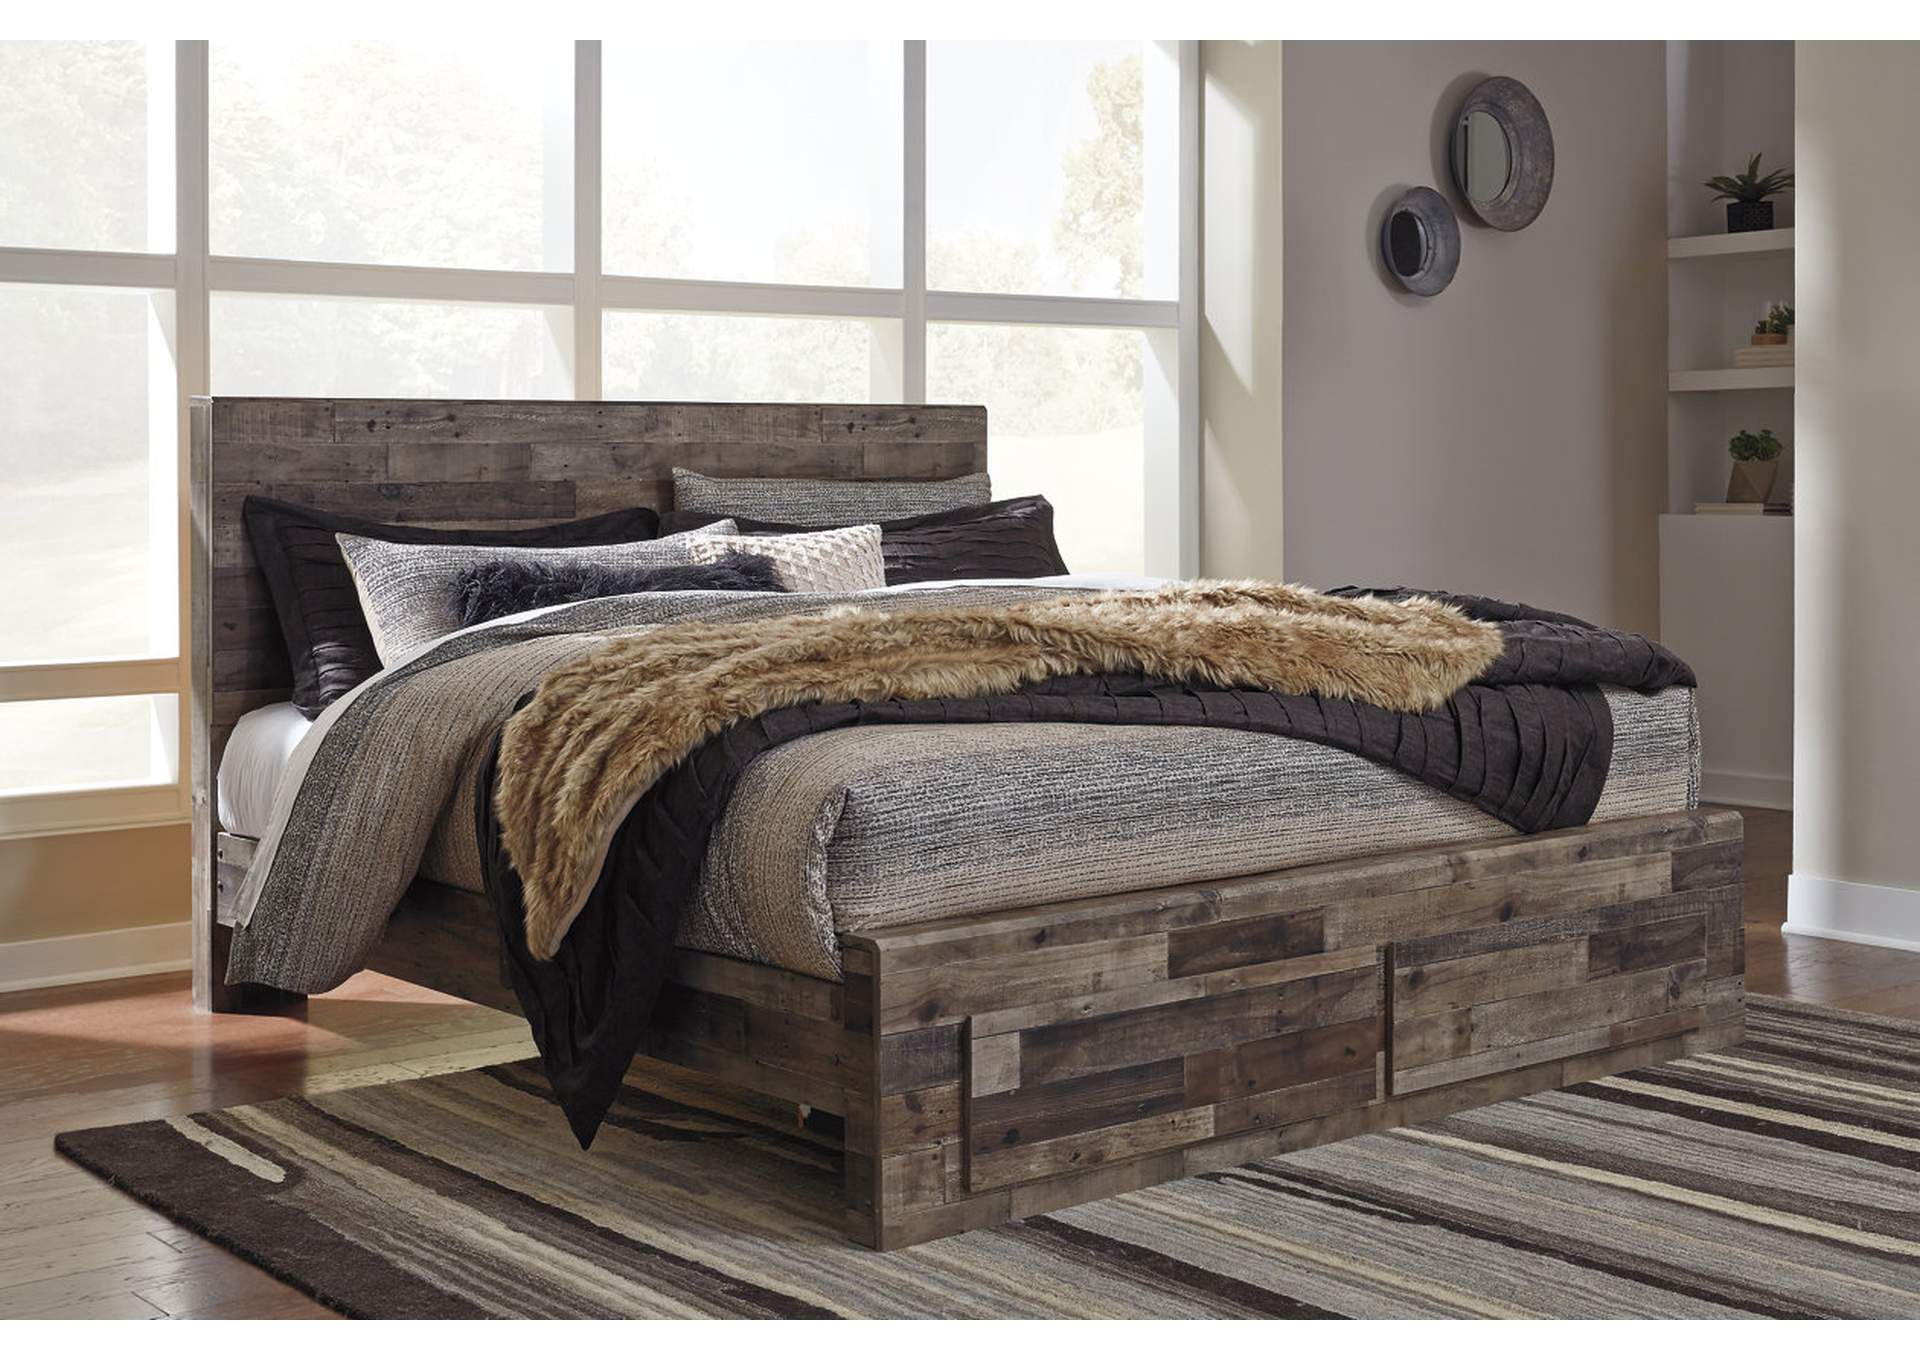 Derekson King Platform Bed,Benchcraft